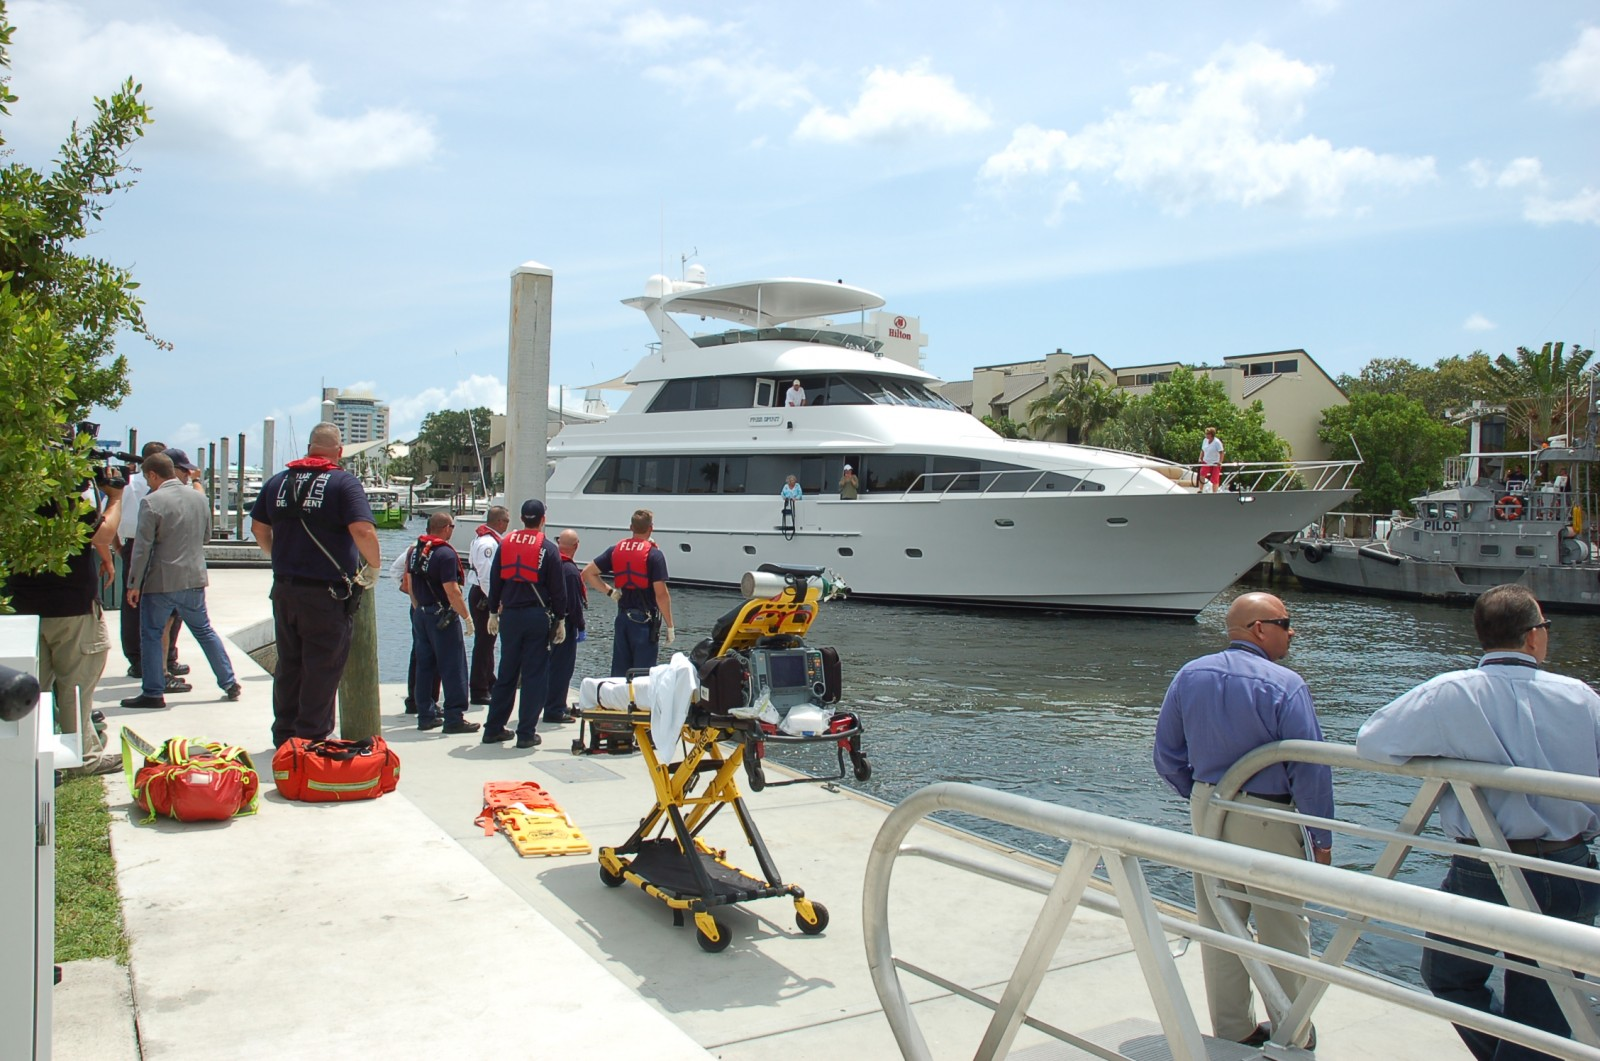 Capt. J.R. Klassen steers M/Y Free Spirit, a 105-foot Northstar, into the public boat in Ft. Lauderdale after rescuing three survivors of a small plane crash this afternoon. PHOTO BY DORIE COX